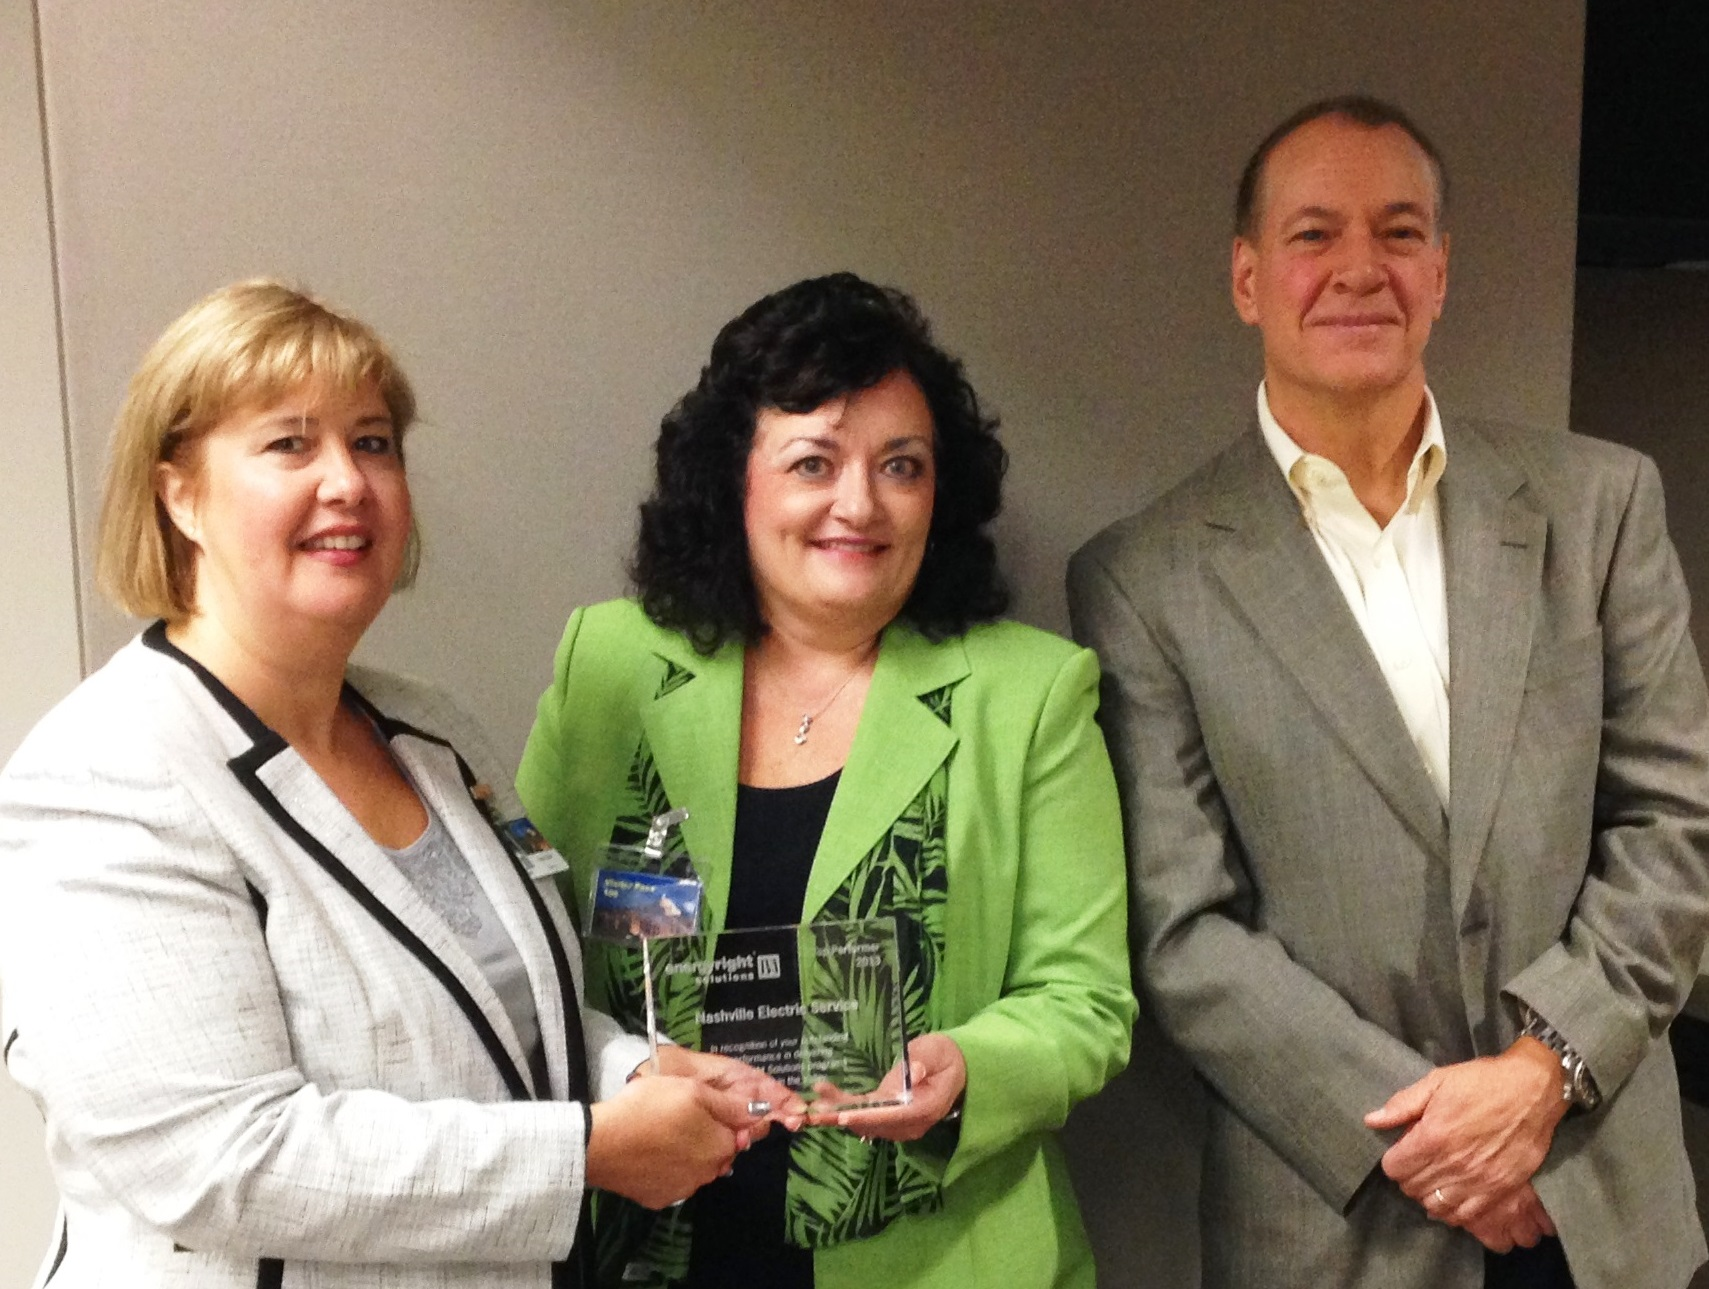 TVA presents NES with award for energy efficiency efforts